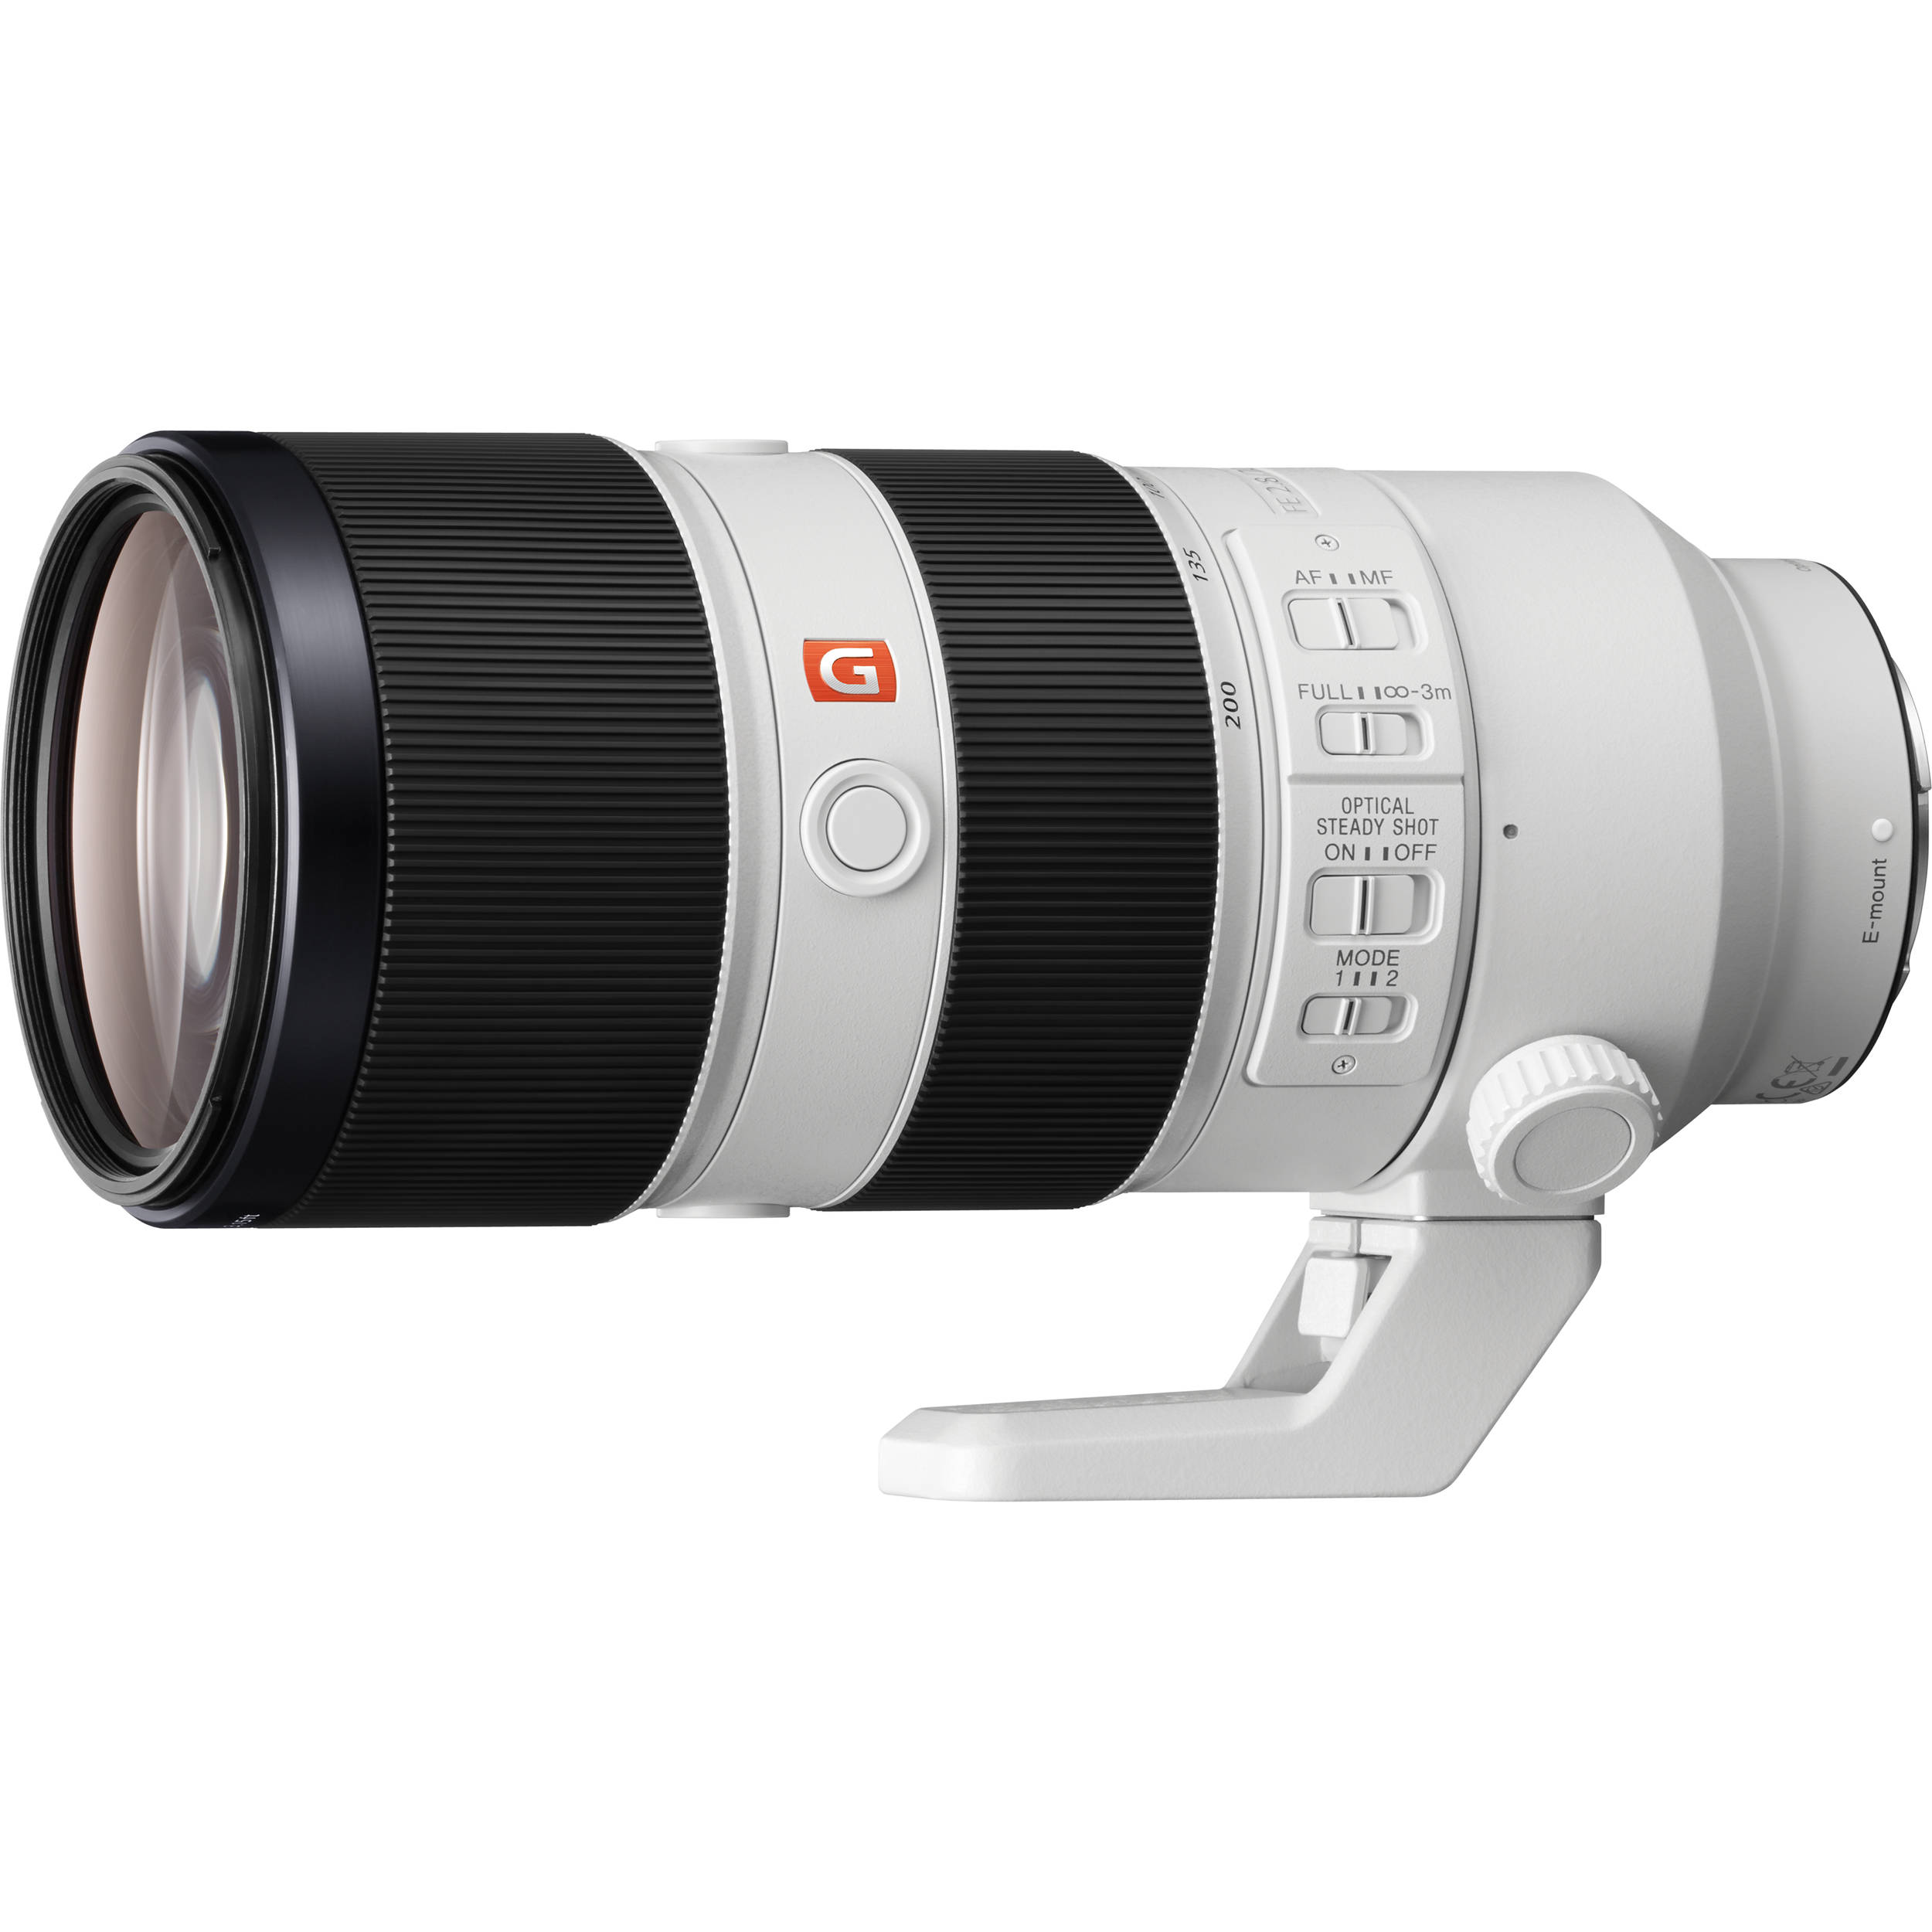 sony 70 200 f4. sony fe 70-200mm f/2.8 gm oss lens 70 200 f4